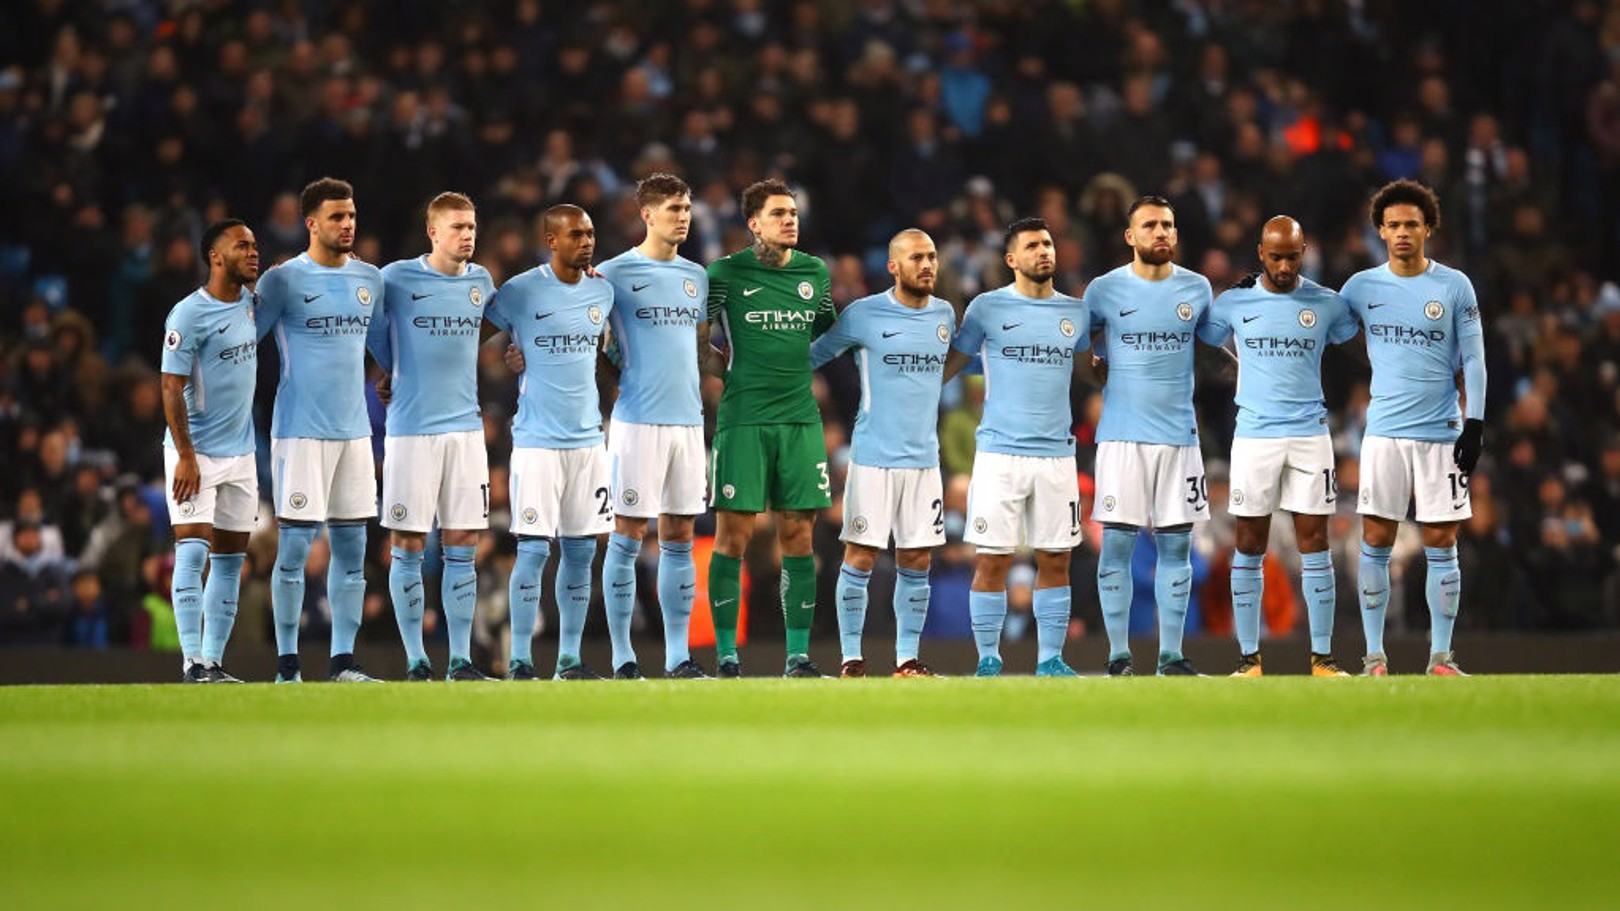 RESPECT: A minute's silence was impeccable observed at the Etihad.